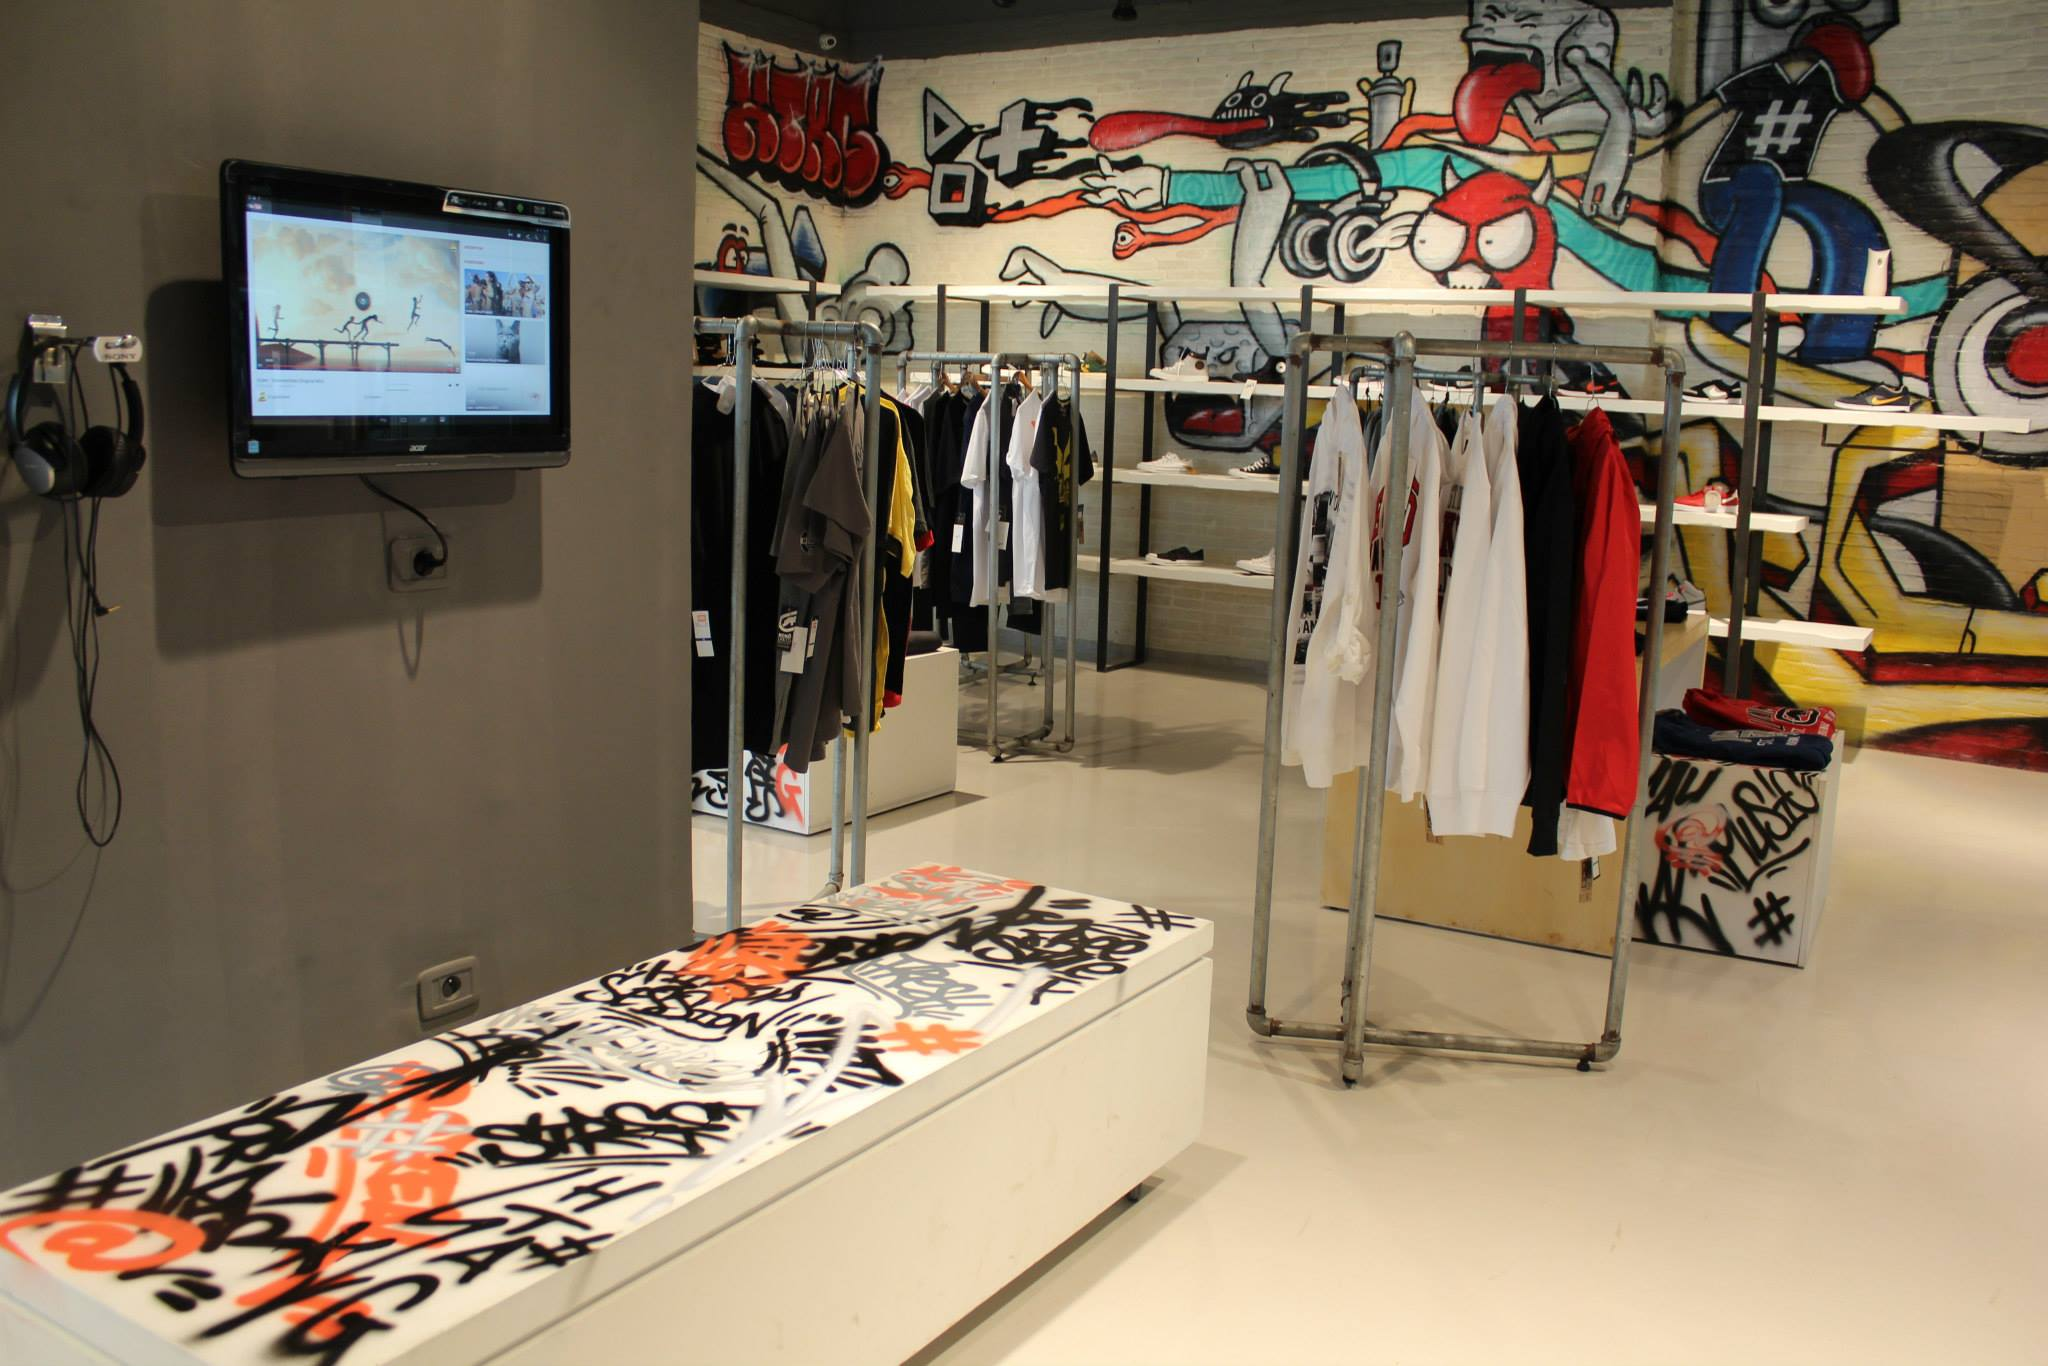 Coolest Concept Stores in Tunis: HTAG Concept Store